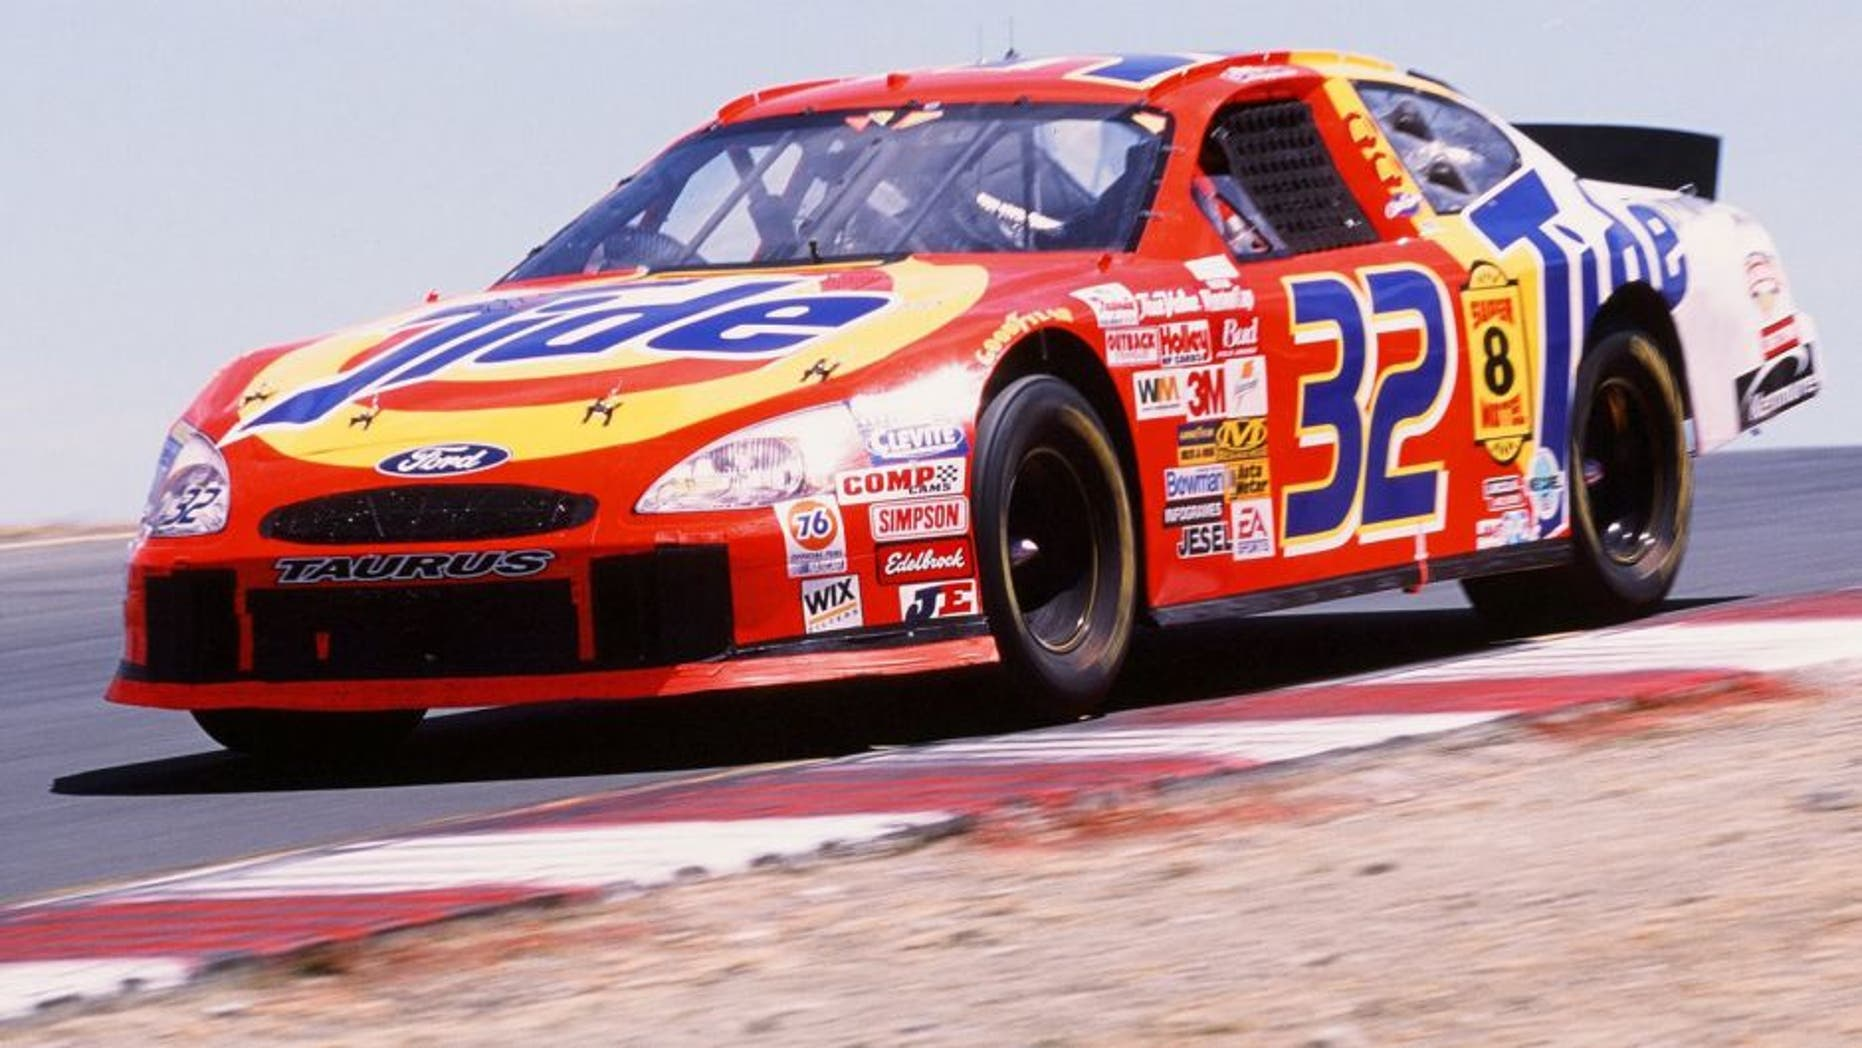 USA - JUNE 23: Ricky Craven drives during the Dodge SaveMart 350 on June 23, 2002. (Photo by Sporting News via Getty Images)